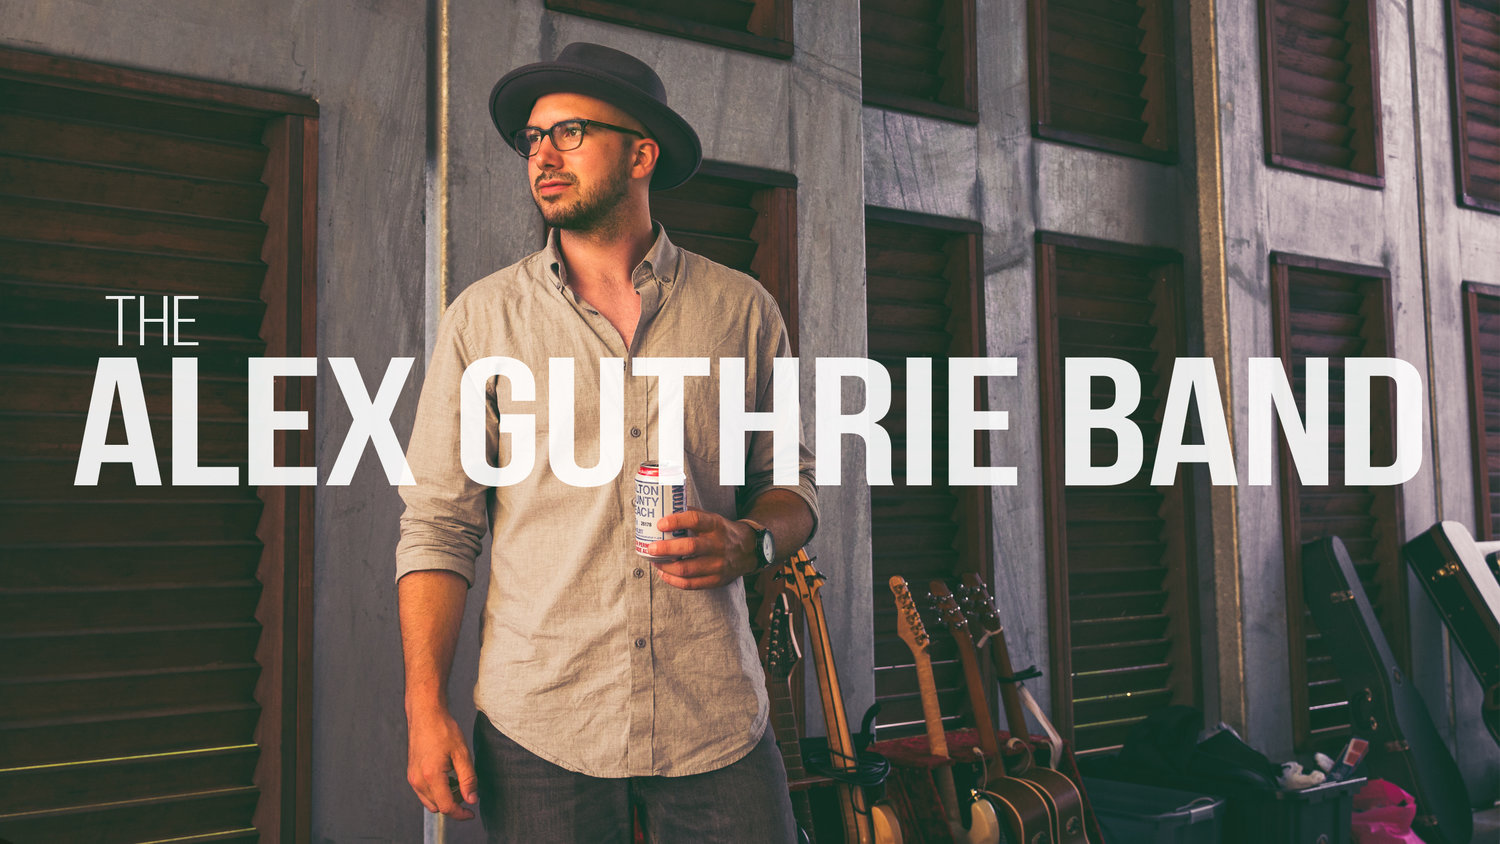 THE ALEX GUTHRIE BAND